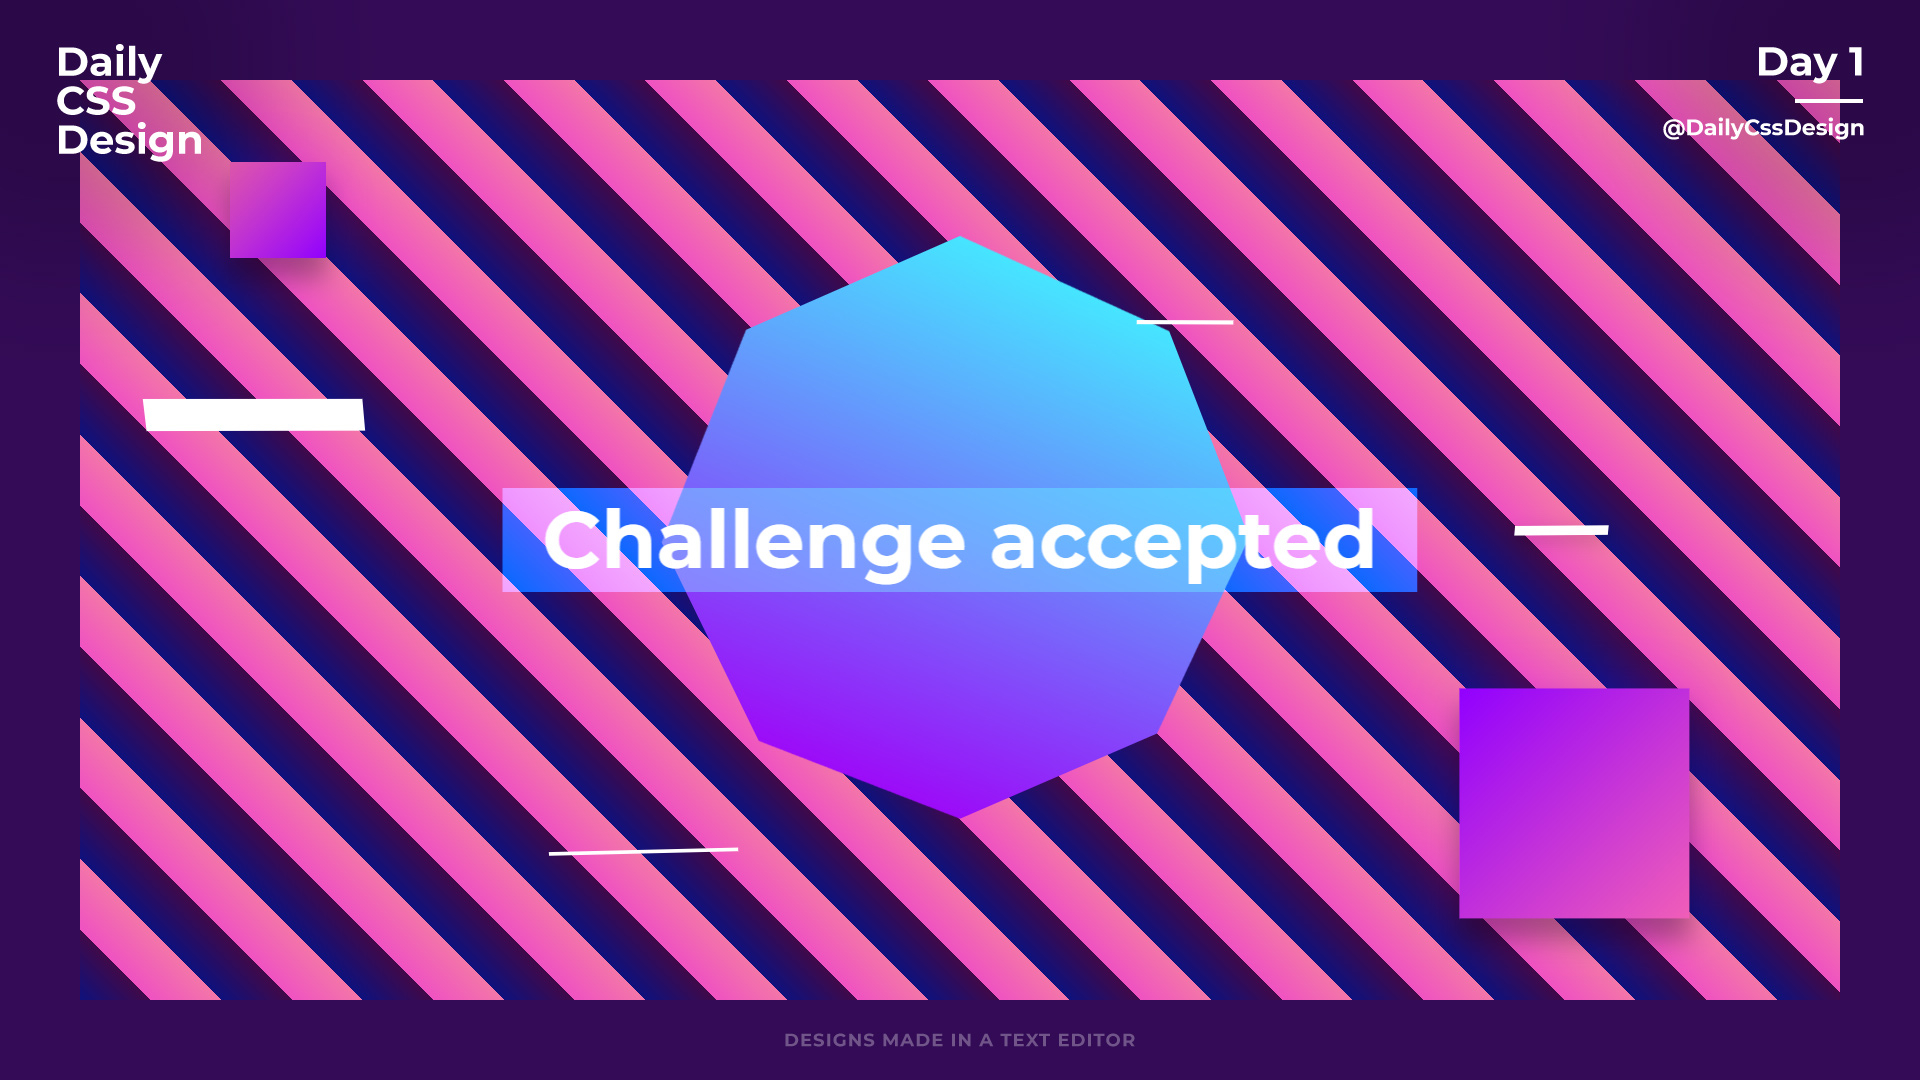 Day 1  Daily Css Design regarding Daily Css Challenge